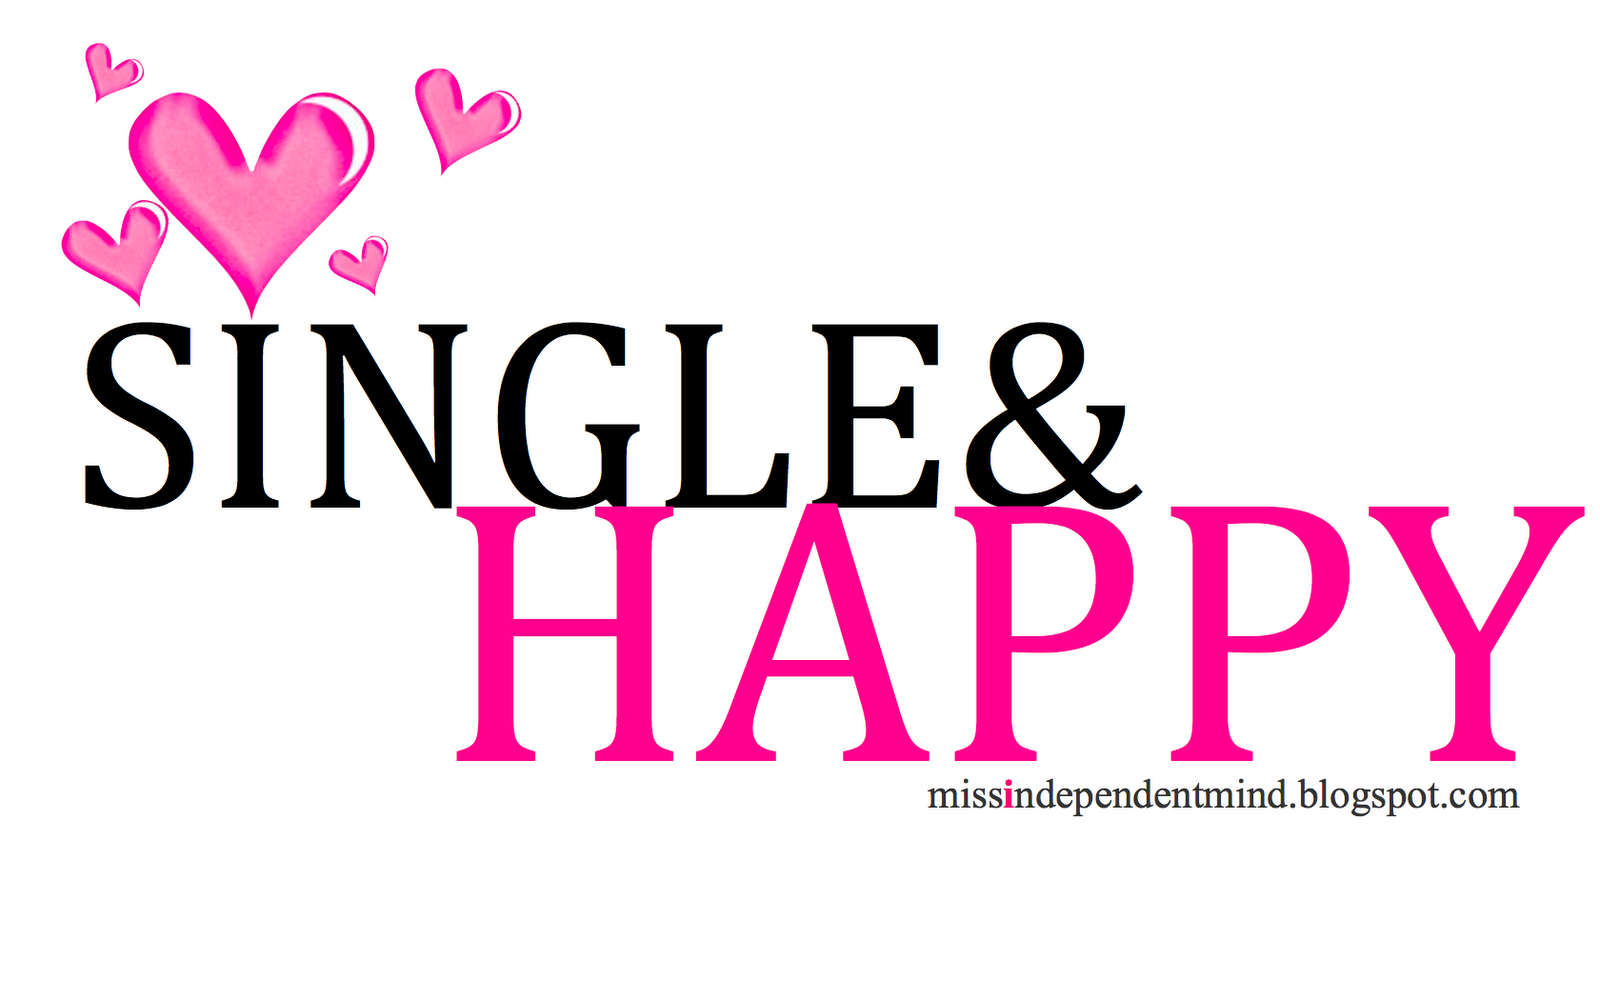 singles in loving Meet quality singles near you you probably know what kind of people you're looking for, but finding each other feels like trying to find a needle in a haystack we partner with local professional dating services that specialize in bringing quality singles together, so you can stop looking for love and start enjoying it.